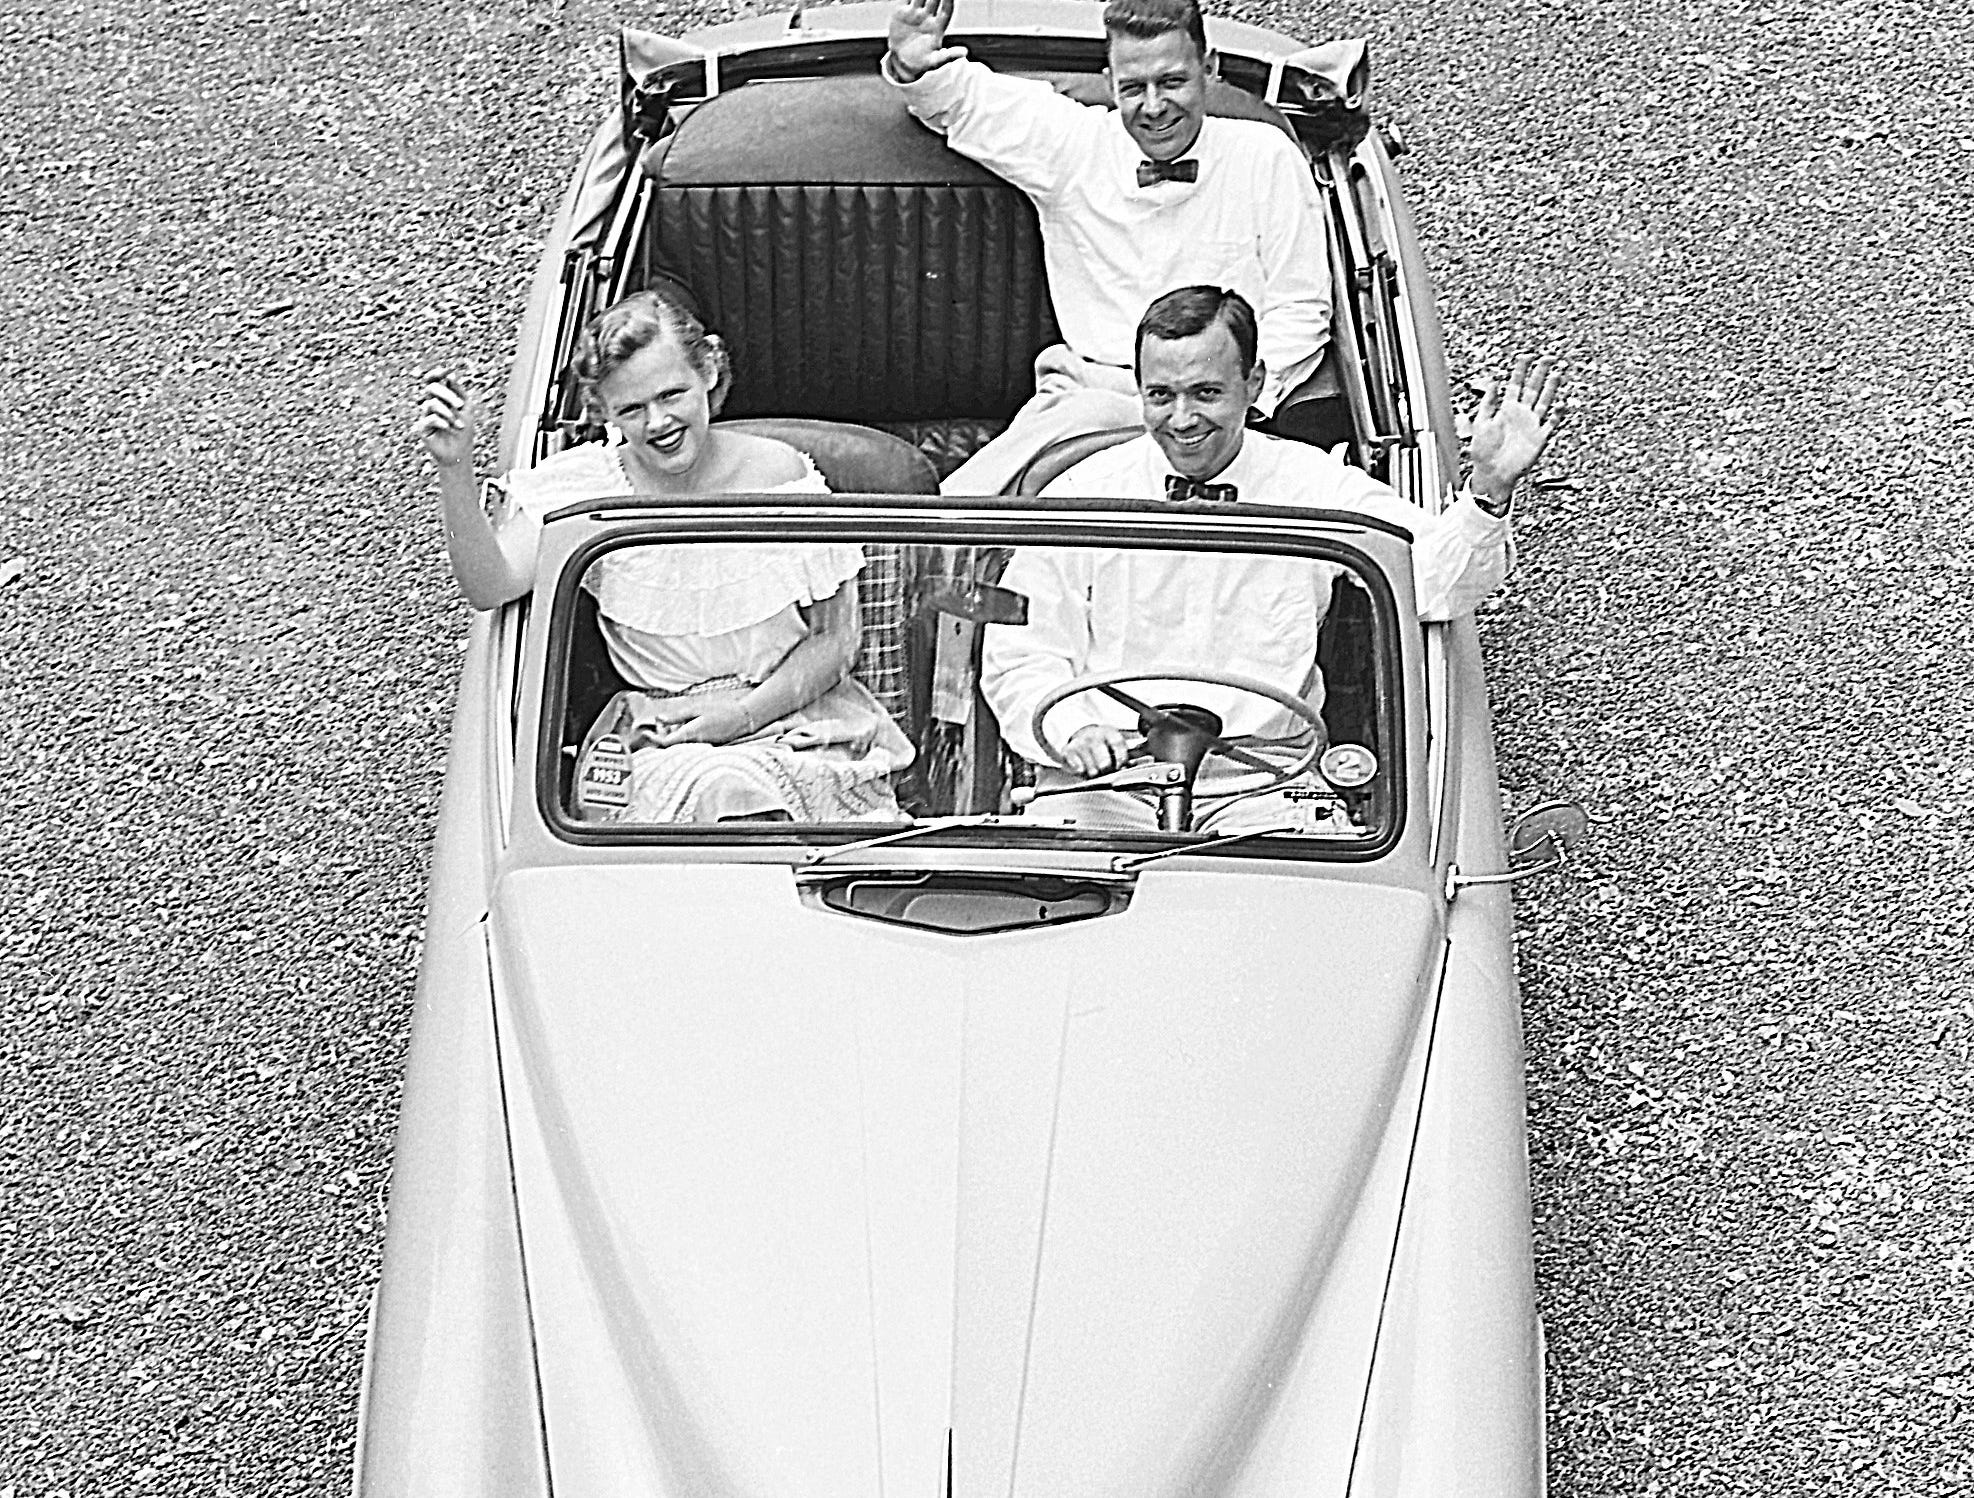 A bird's-eye view of three foreign car enthusiasts shows Mr. and Mrs. Edward Dewey (Front Seat) of 46 Morningside Park and his brother, William C. Dewey of 48 South Bingham, in Ed Dewey's Hillman-Minx in September 1953.  The Dewey brothers were among the first foreign car owners in Memphis, bringing home a Morris in which they had toured Europe.  Now, each brother owns a Hillman-Minx.  The small cars are easy to handle in traffic and to park.